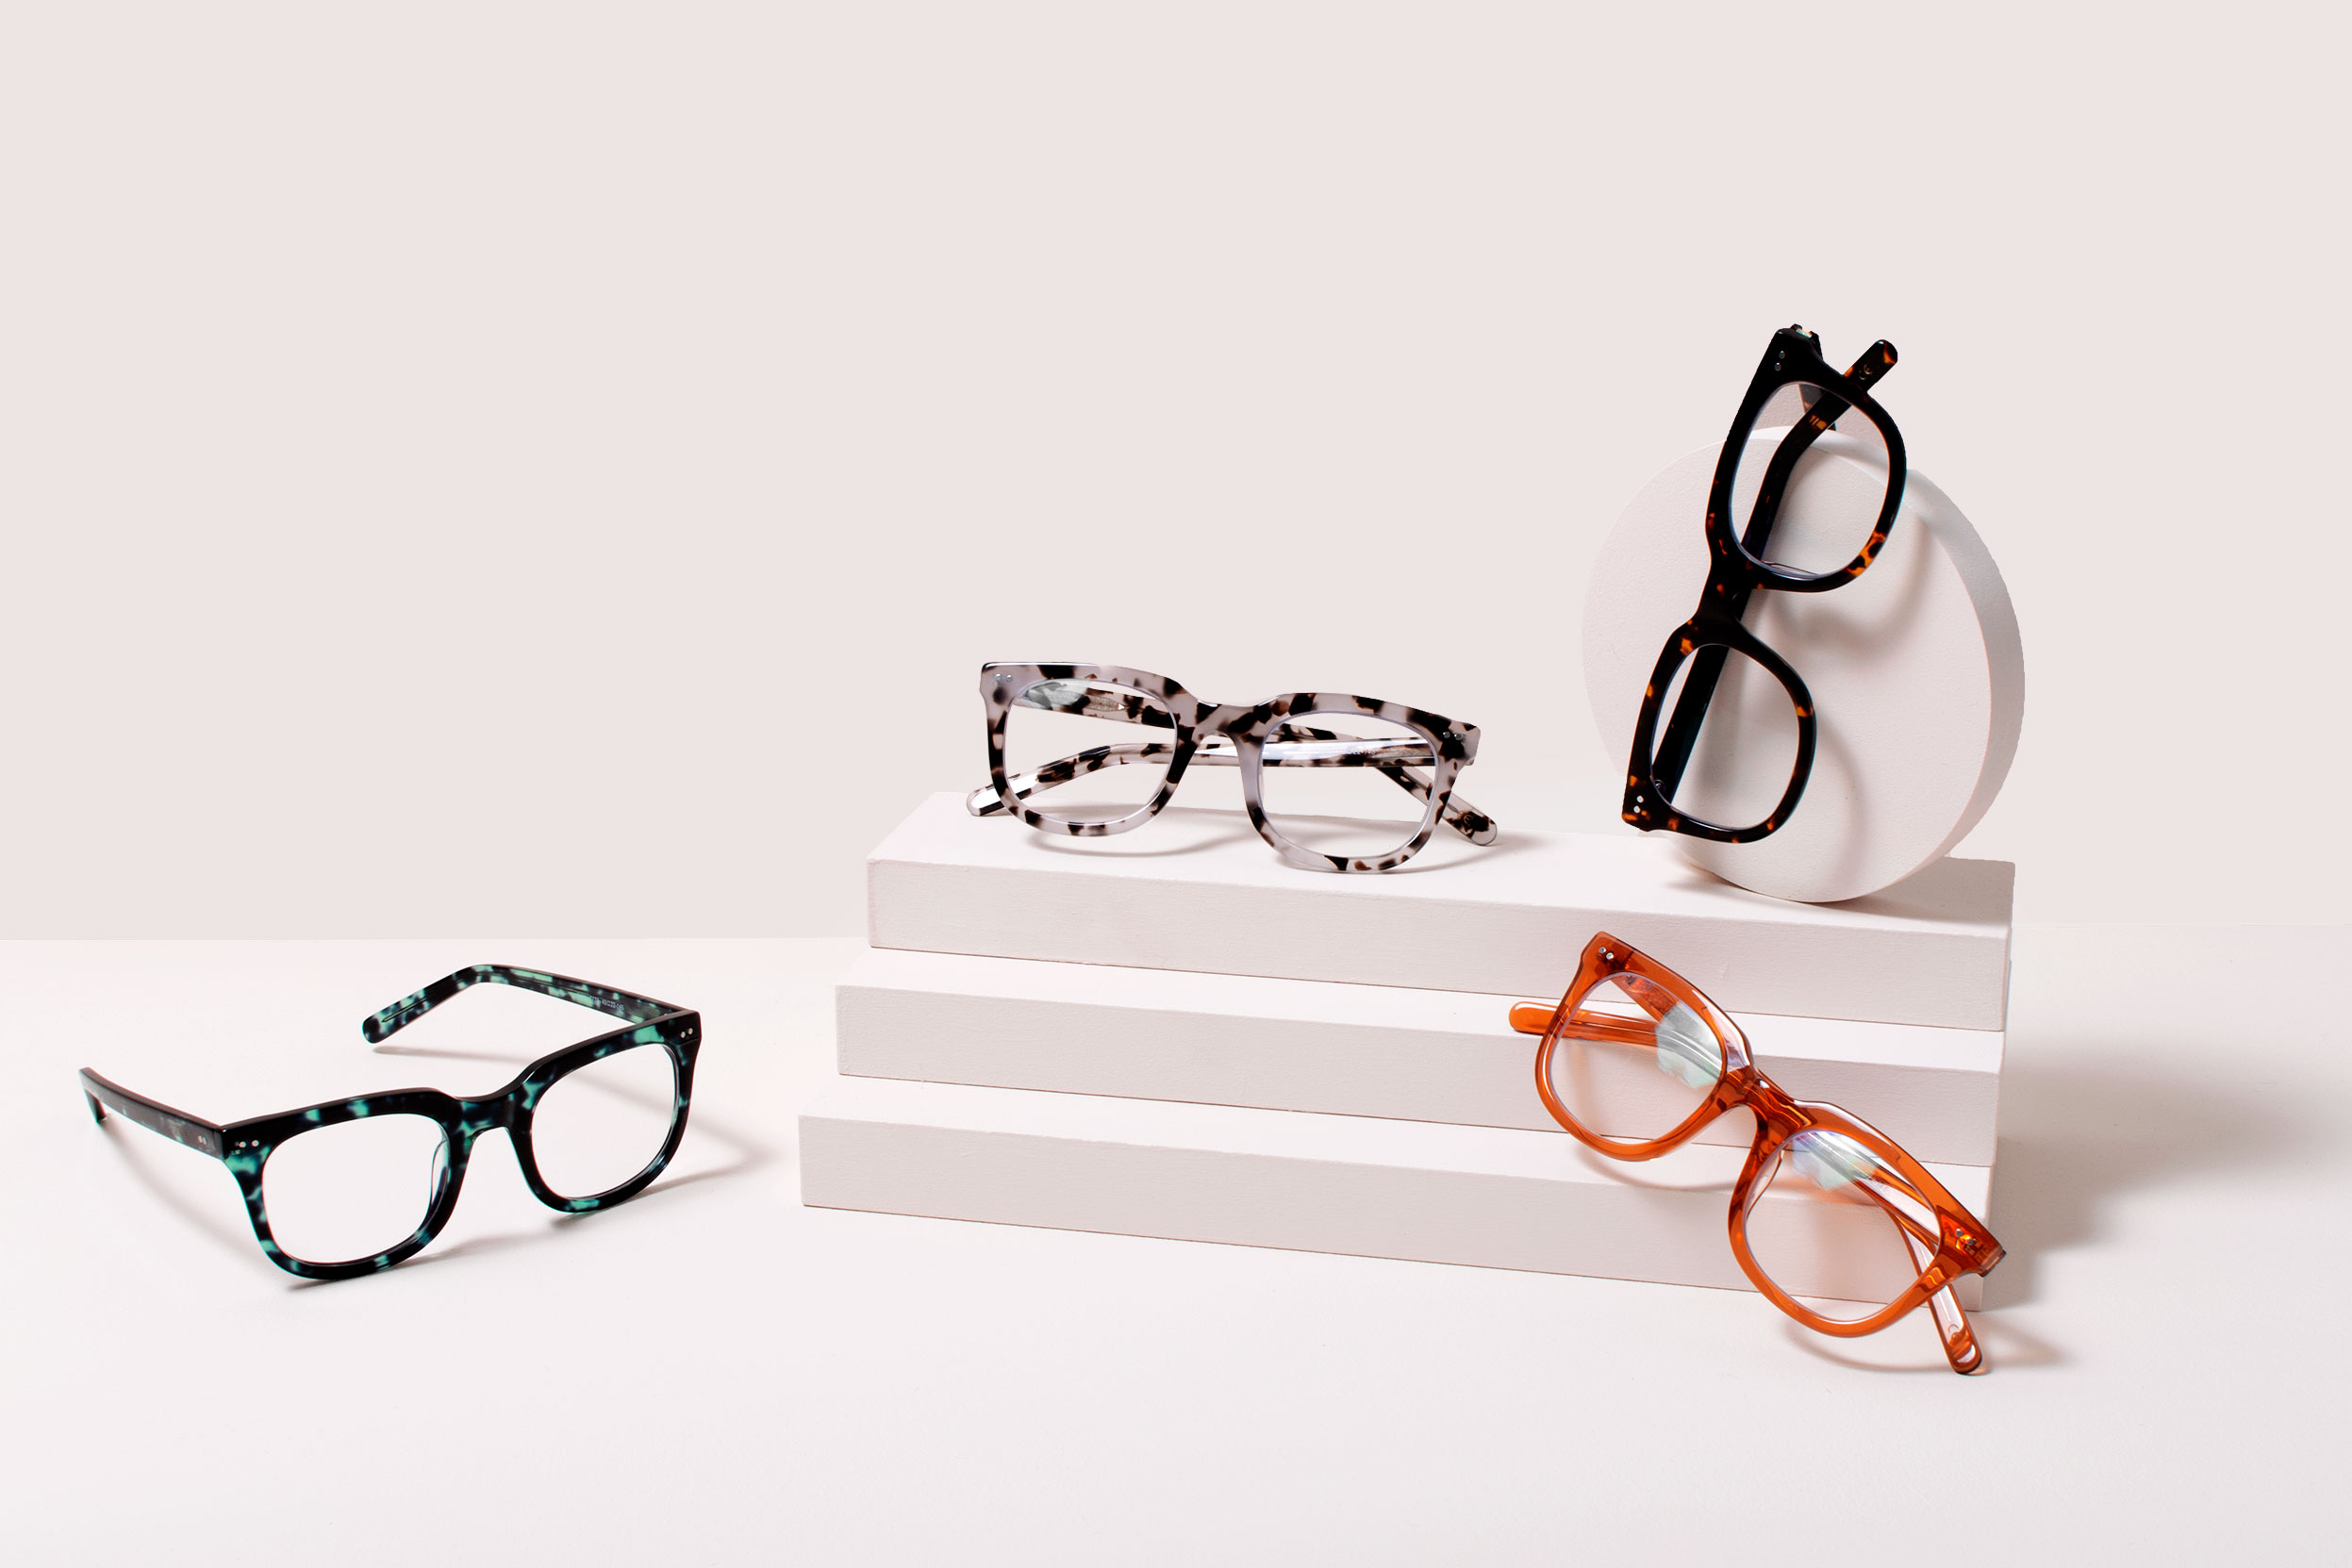 Ambr Eyewear Product Photography Play Nice Studio